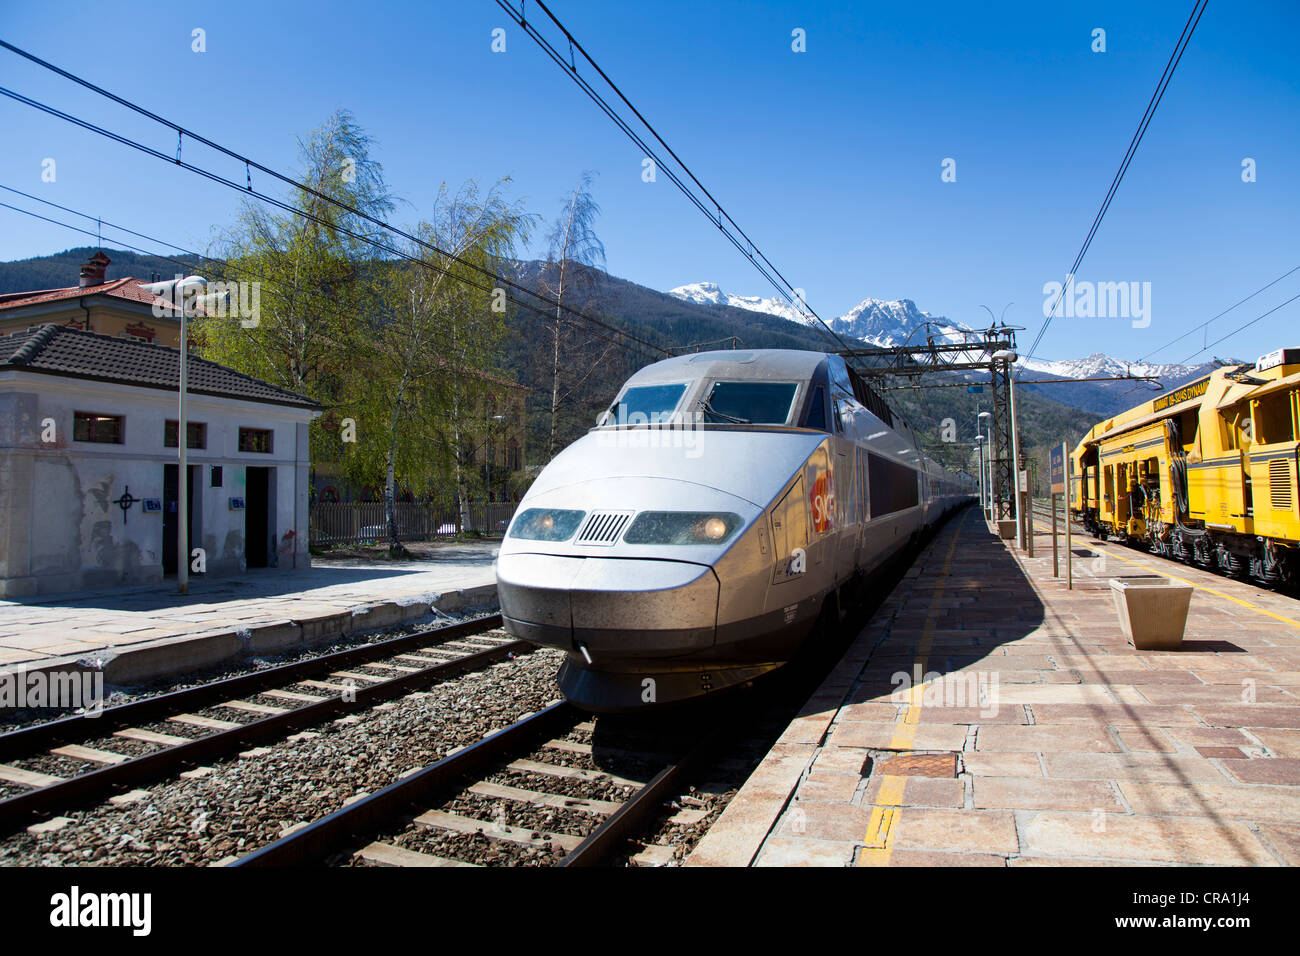 SNCF TGV train in Oulx station, Piemonte, Italy - Stock Image